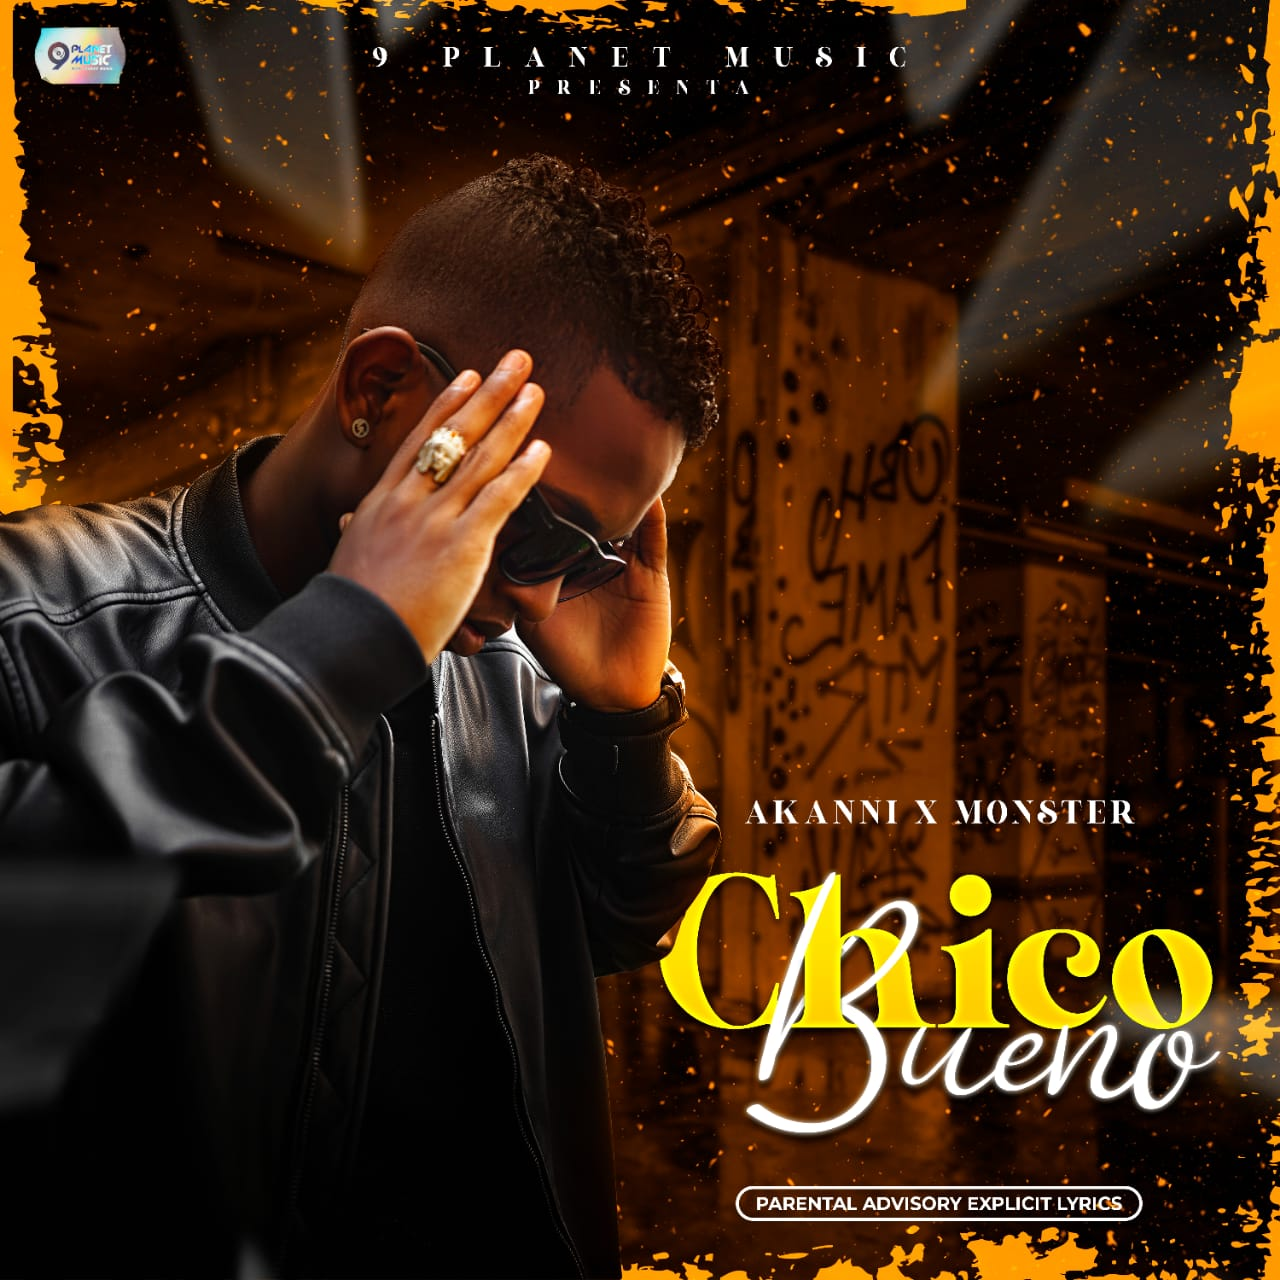 Akanni x Monster – Chico bueno